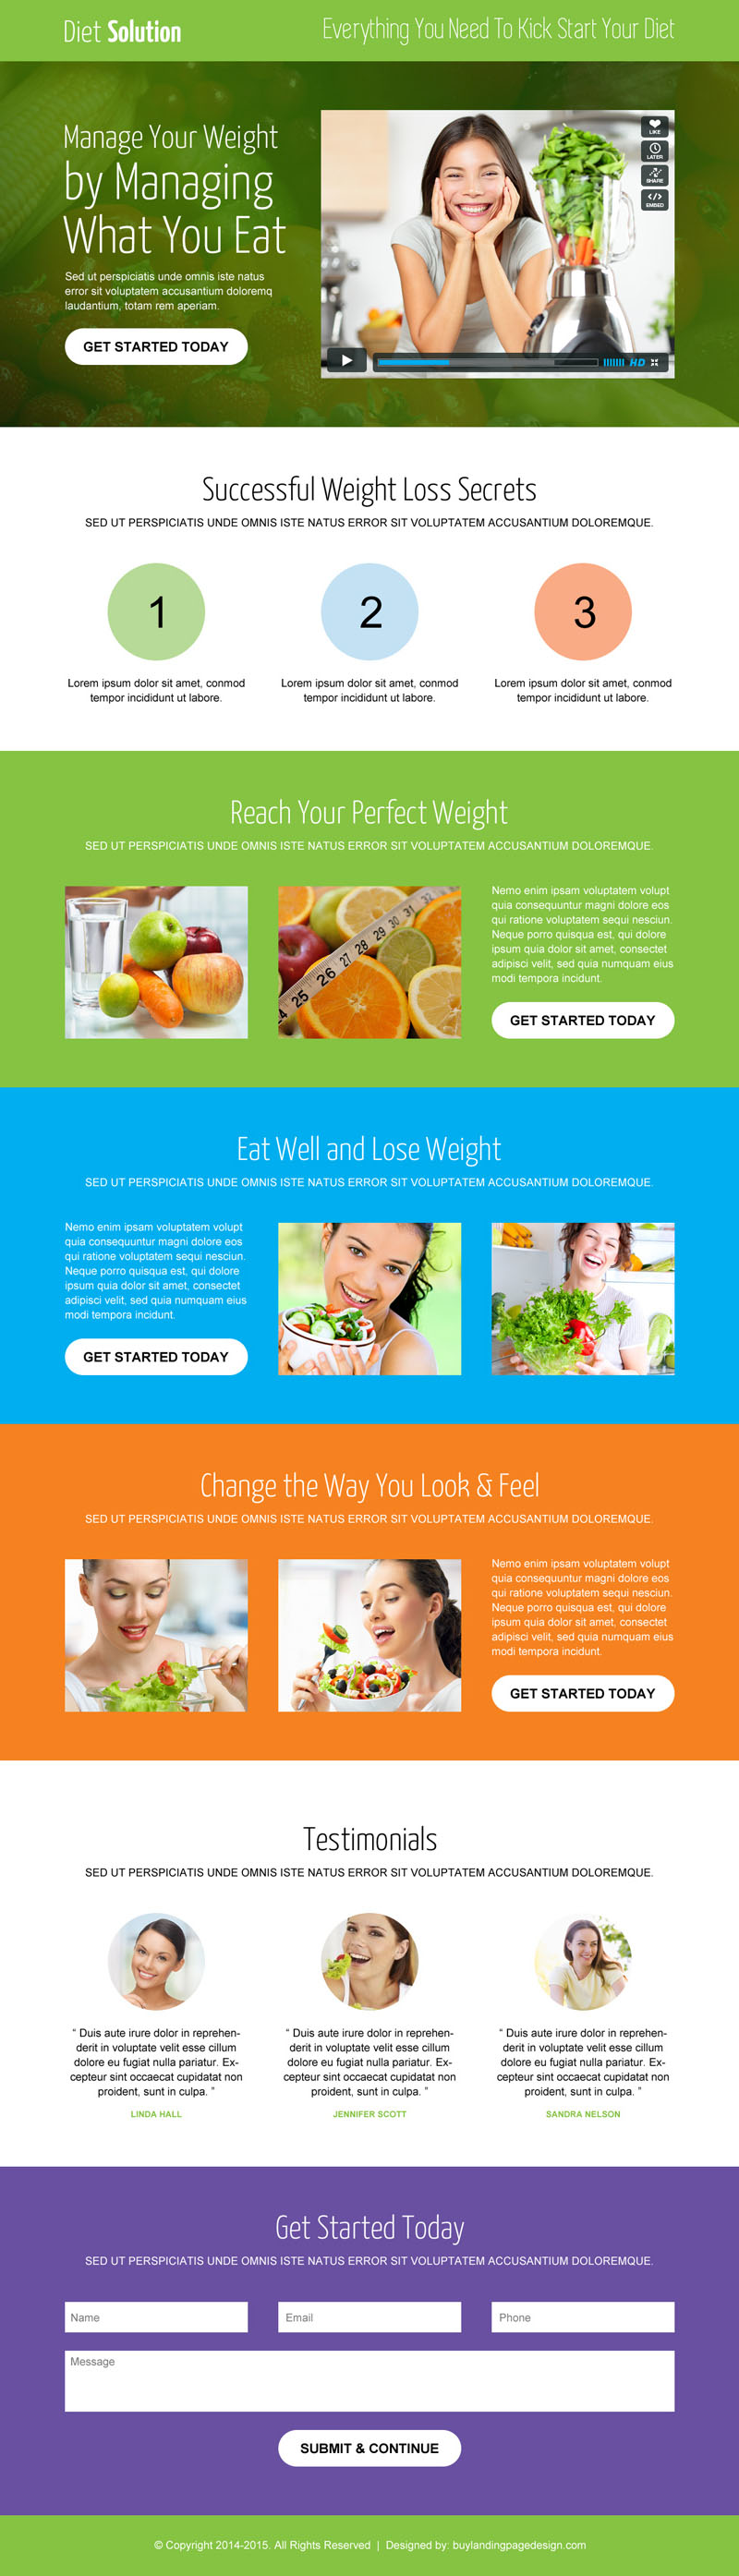 best-weight-loss-diet-responsive-video-lead-capture-landing-page-design-template-014